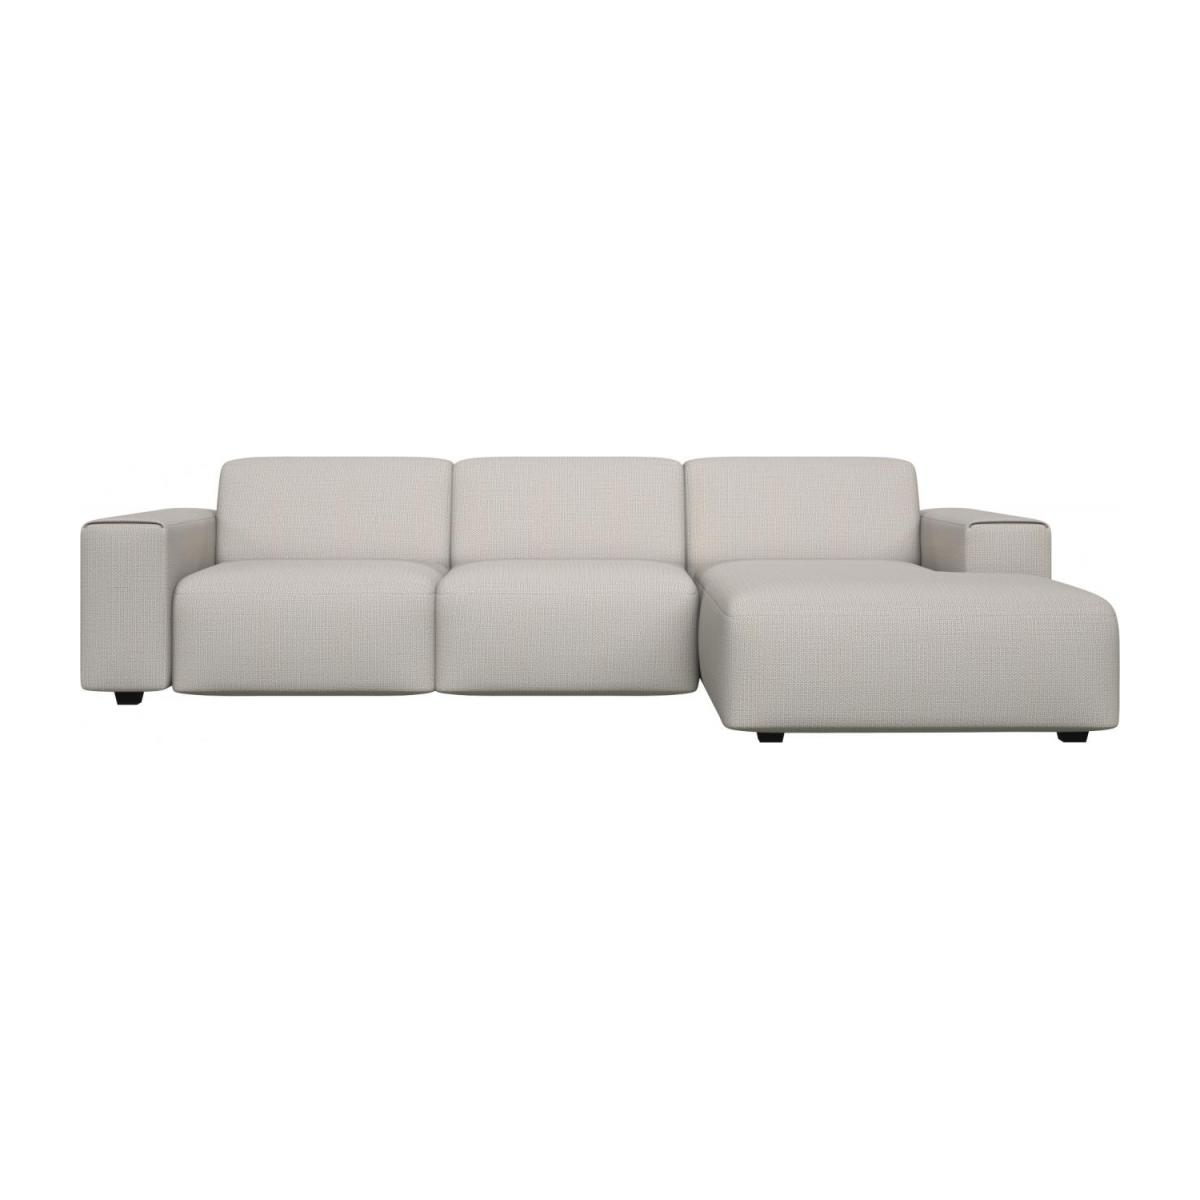 3 seater sofa with chaise longue on the right in Fasoli fabric, snow white n°2